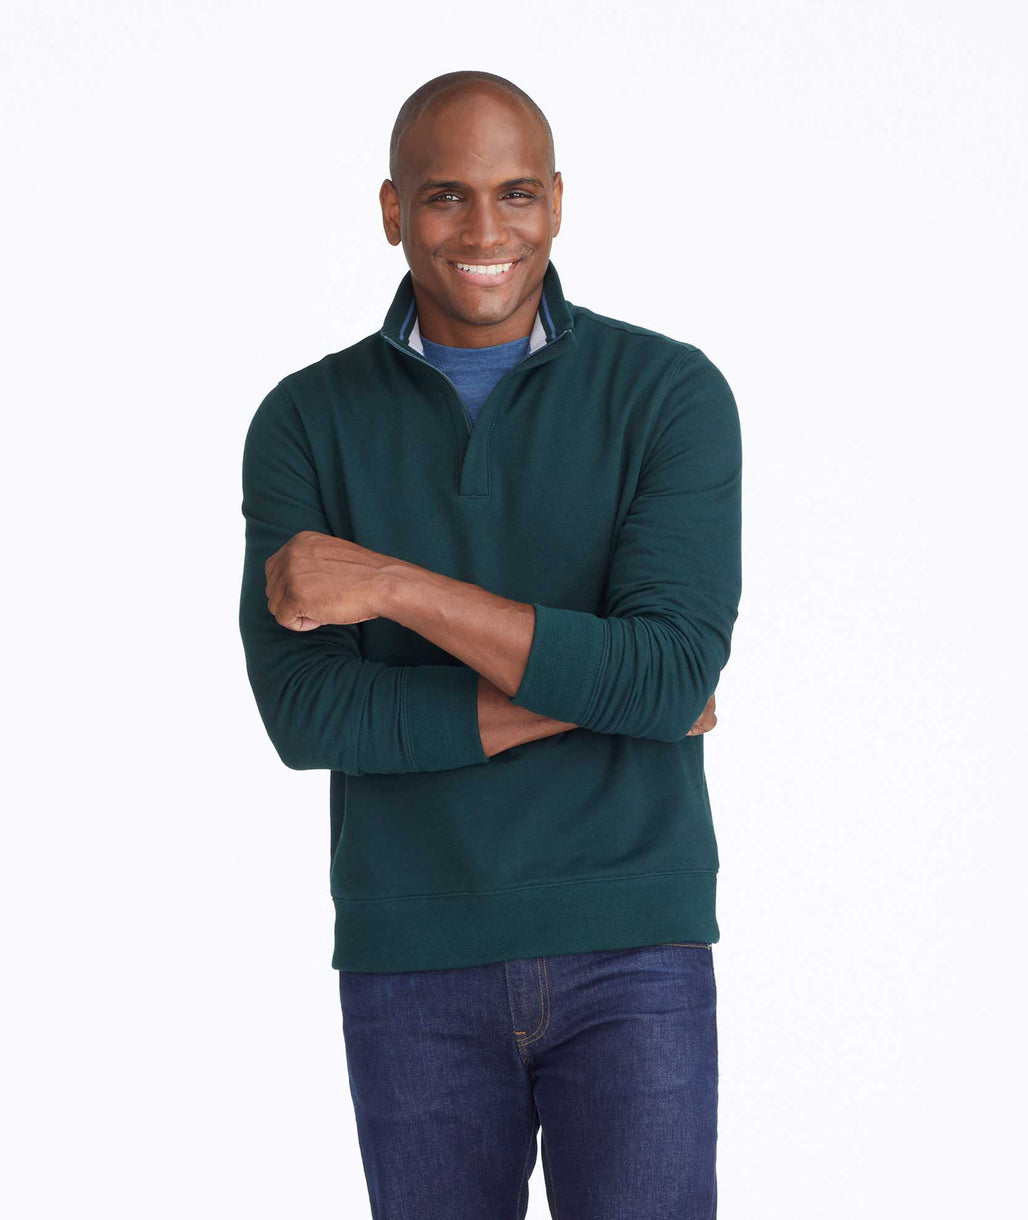 Quarter-Zip Sweatshirt